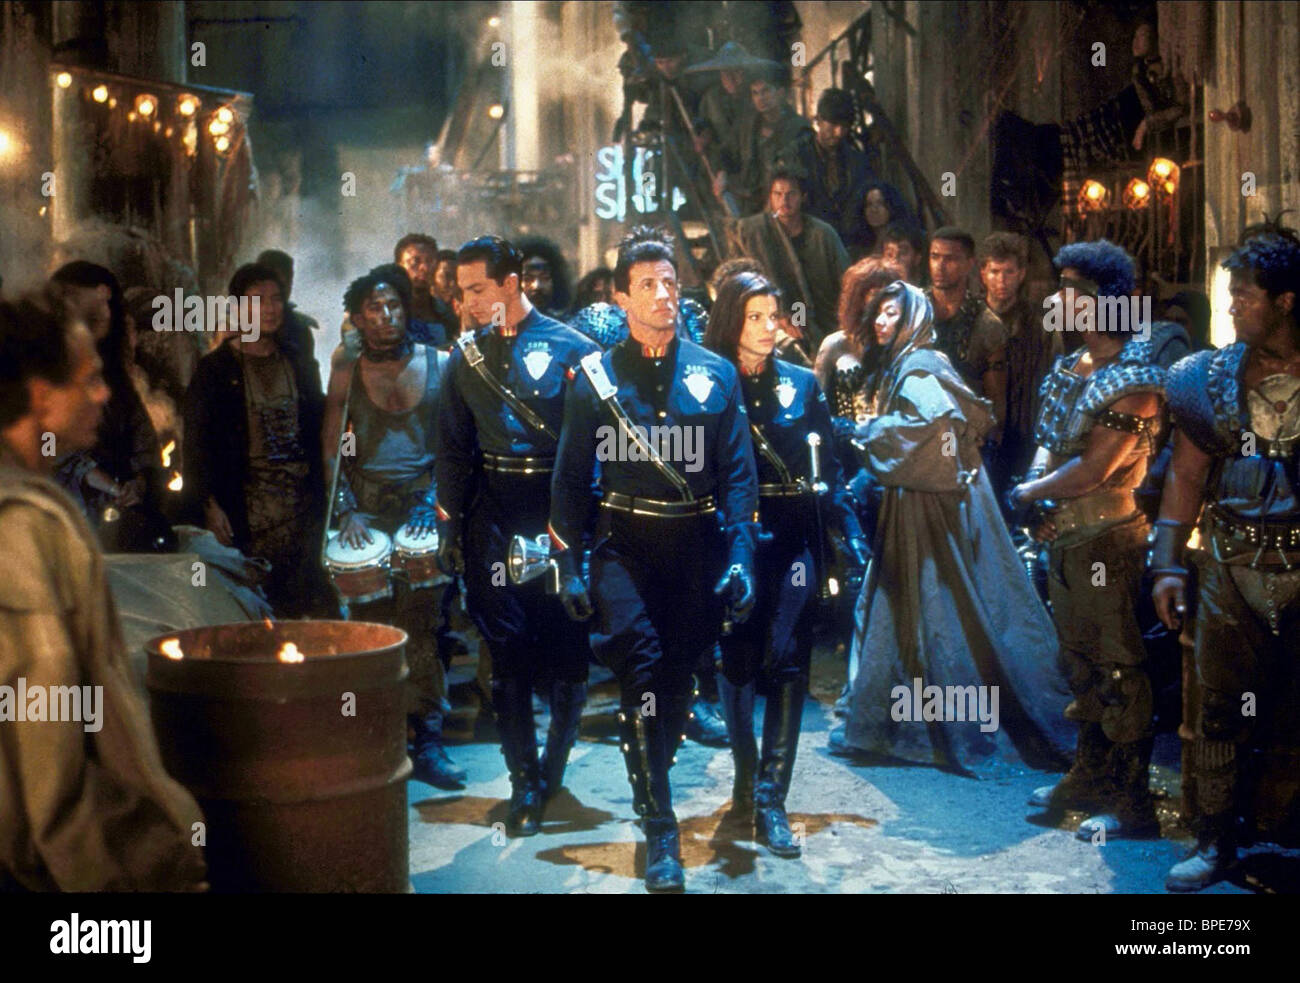 SCENE WITH SYLVESTER STALLONE & SANDRA BULLOCK DEMOLITION MAN (1993) - Stock Image